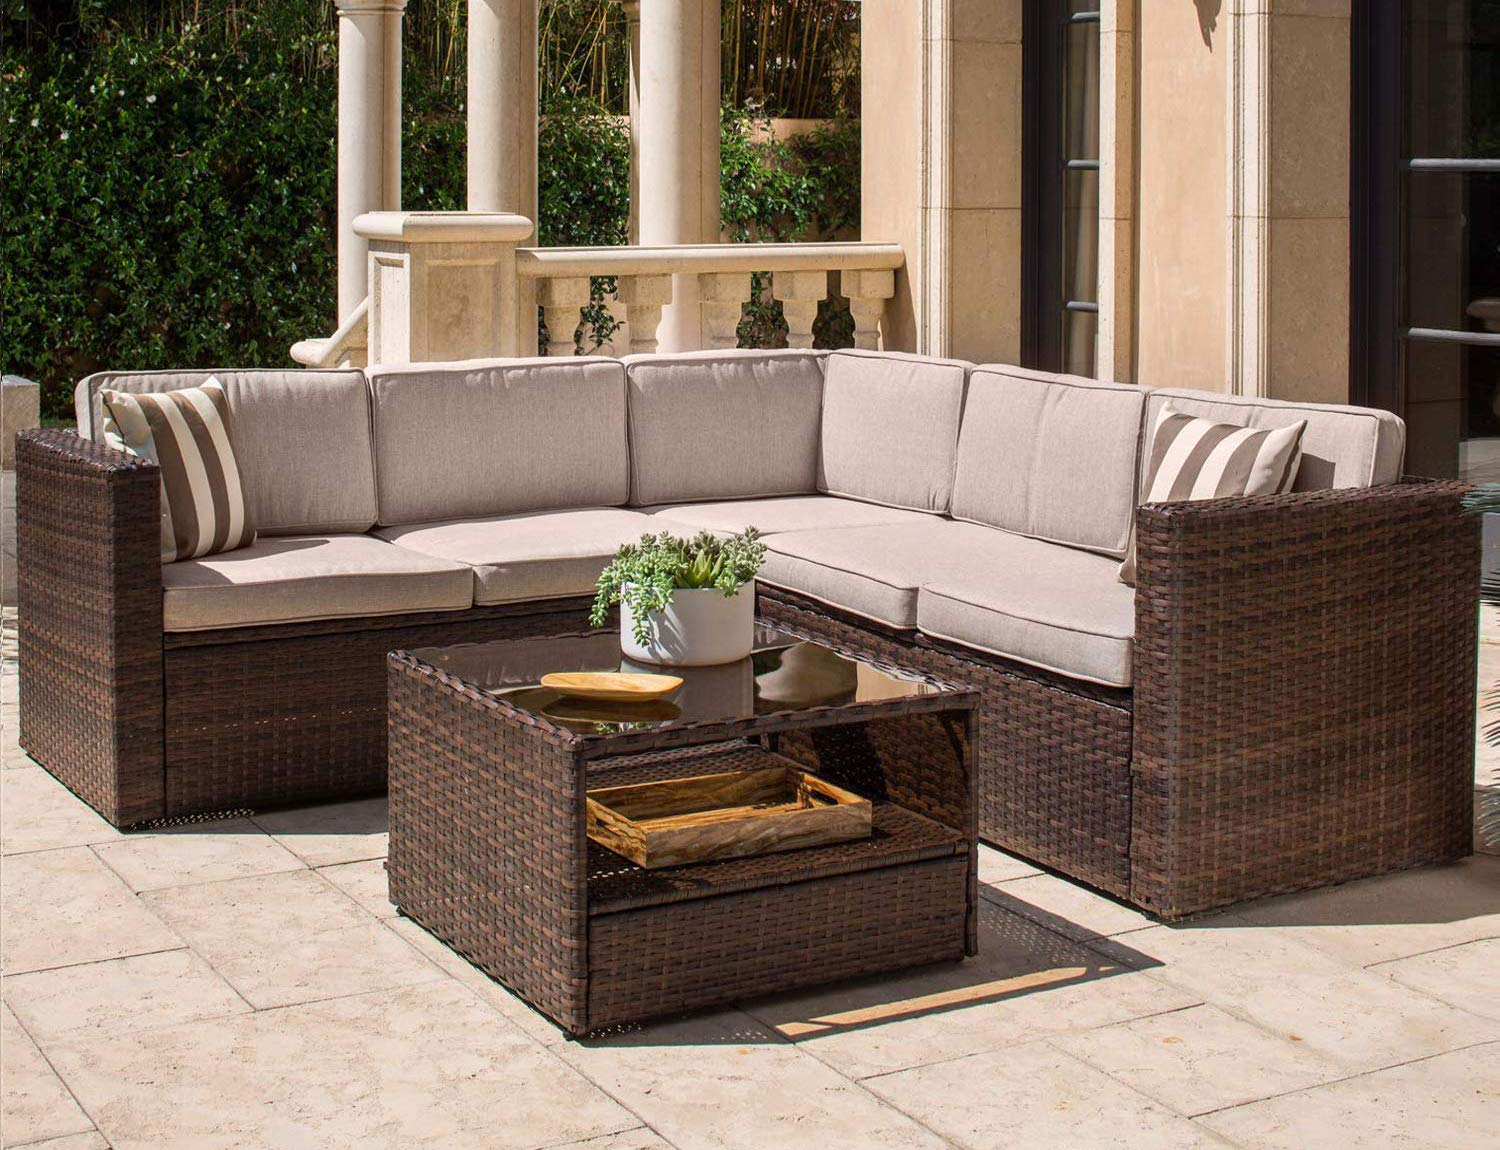 Solaura Outdoor 4-Piece Sofa Sectional Set All Weather Brown Wicker with Beige Cushions & Glass Coffee Table